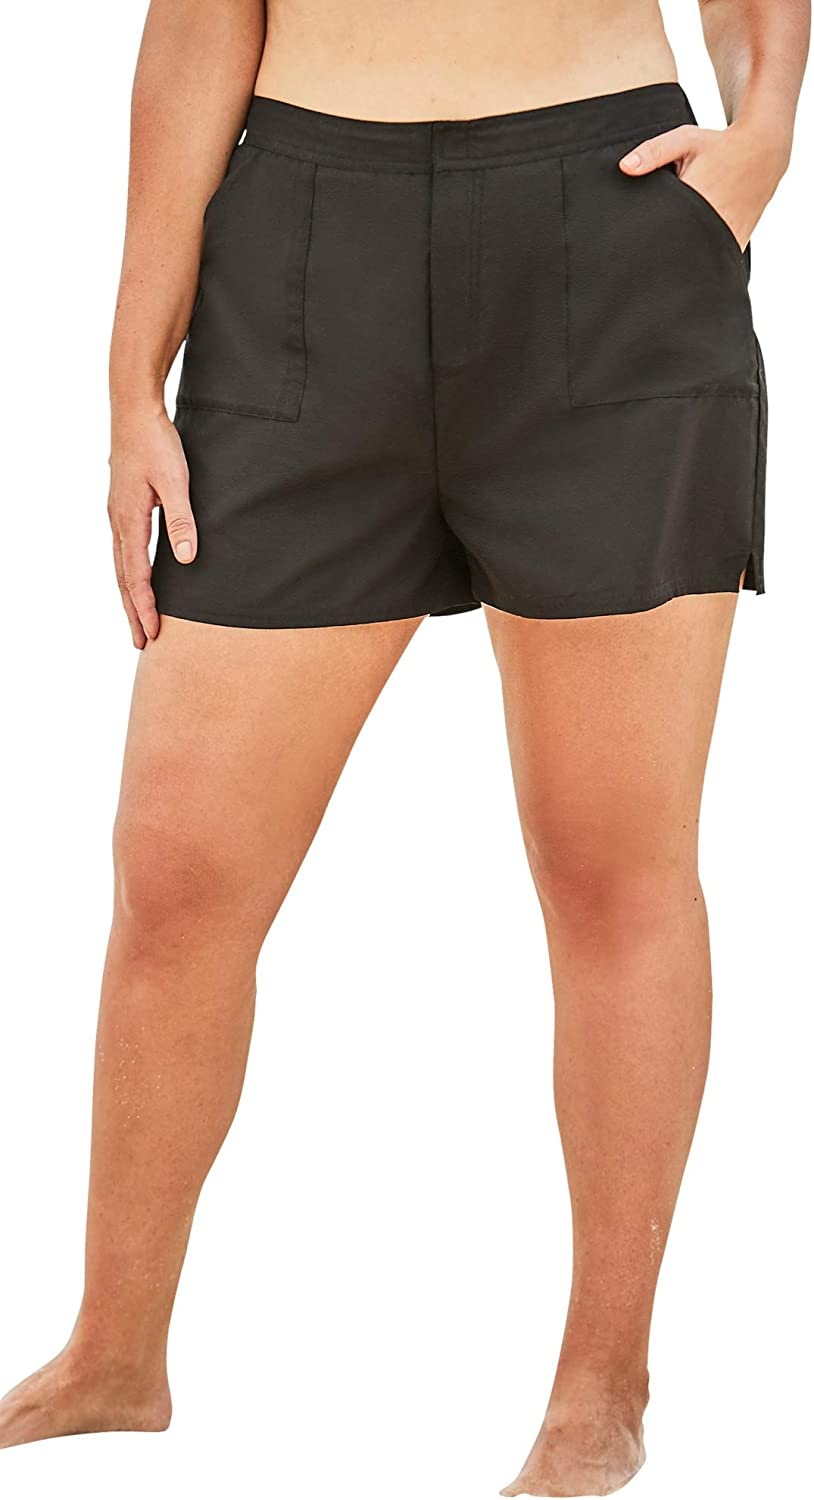 Swimsuits For All Women's Plus Size Cargo Swim Short